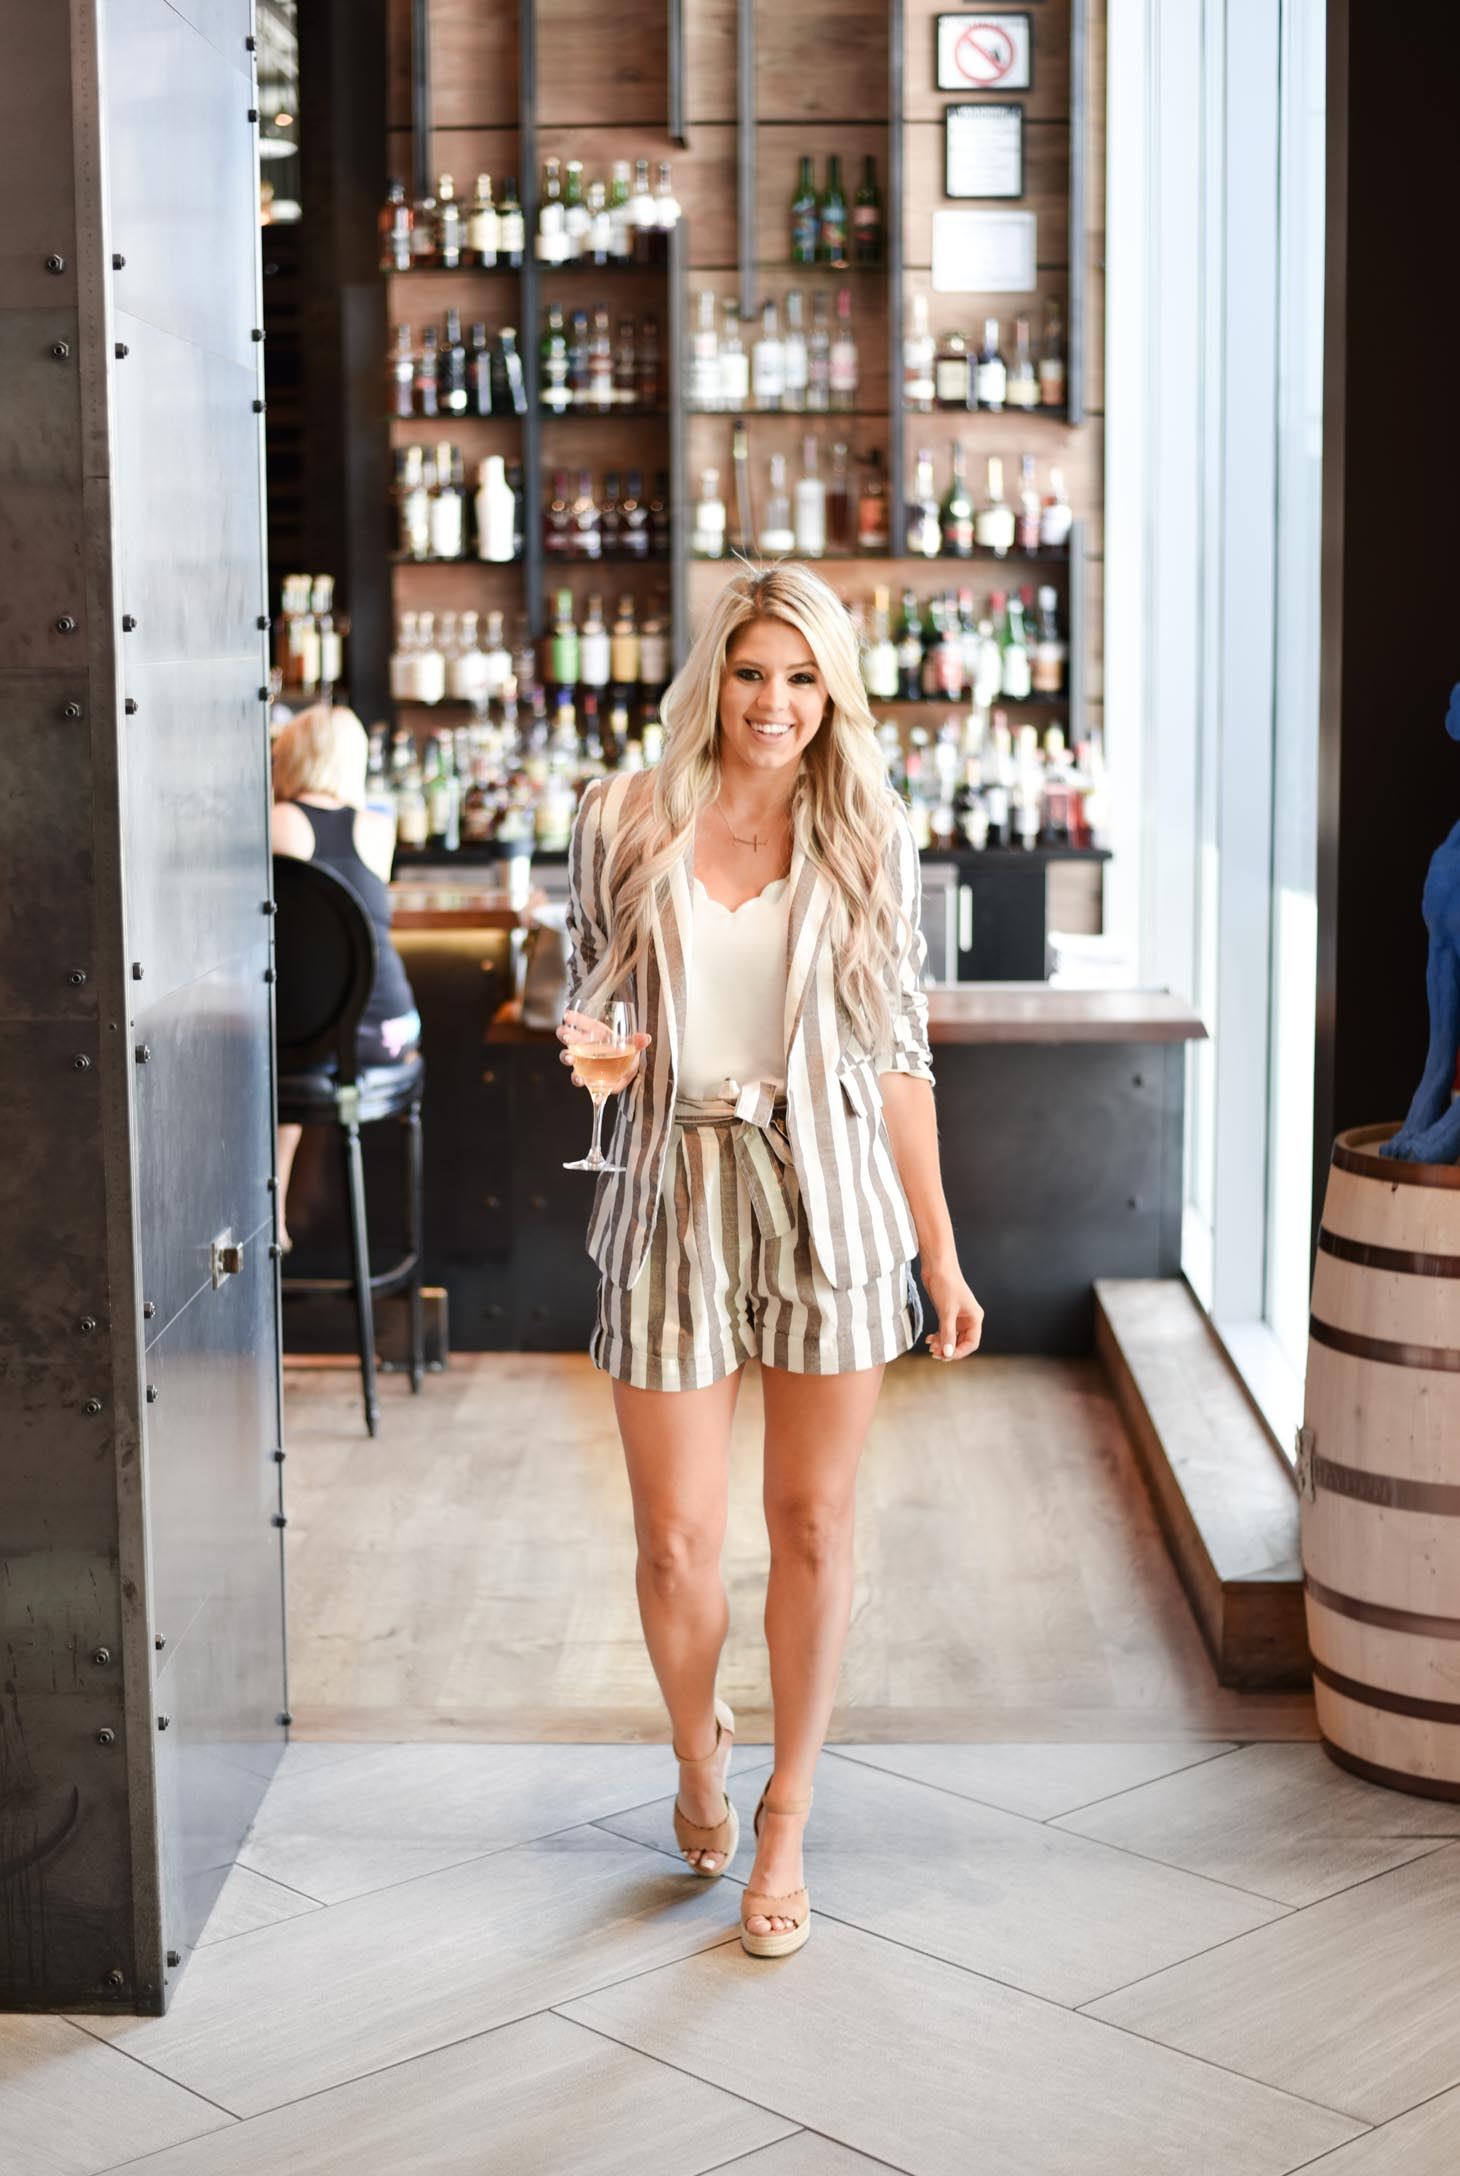 Erin Elizabeth of Wink and a Twirl shares her staycation in downtown Phoenix at the Kimpton Hotel Palomar